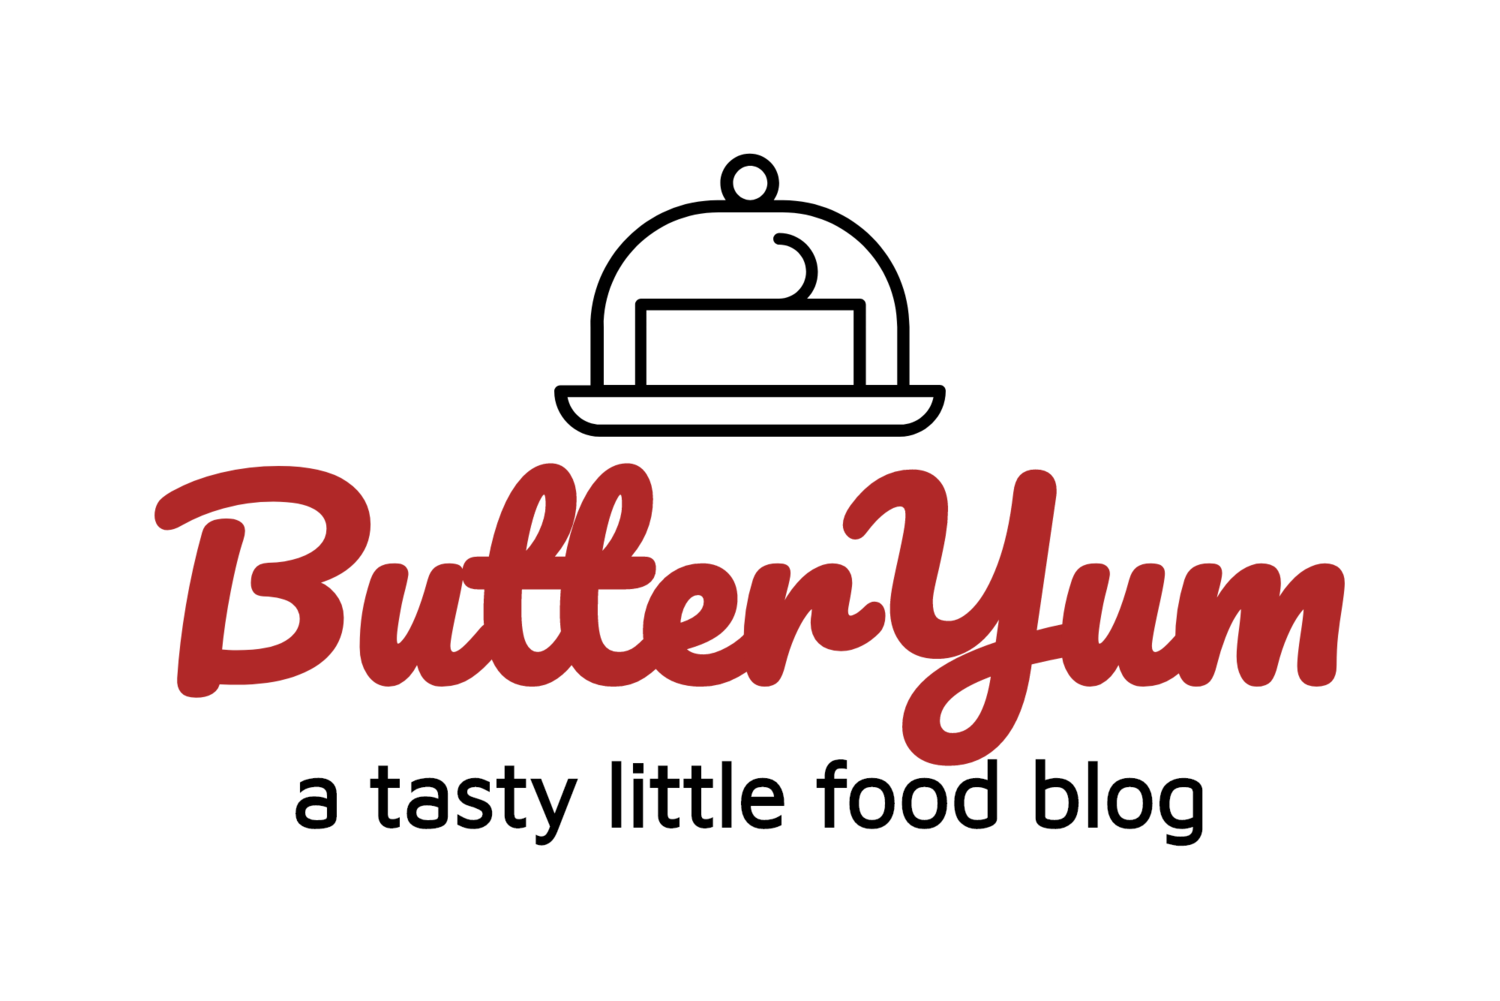 ButterYum — a tasty little food blog